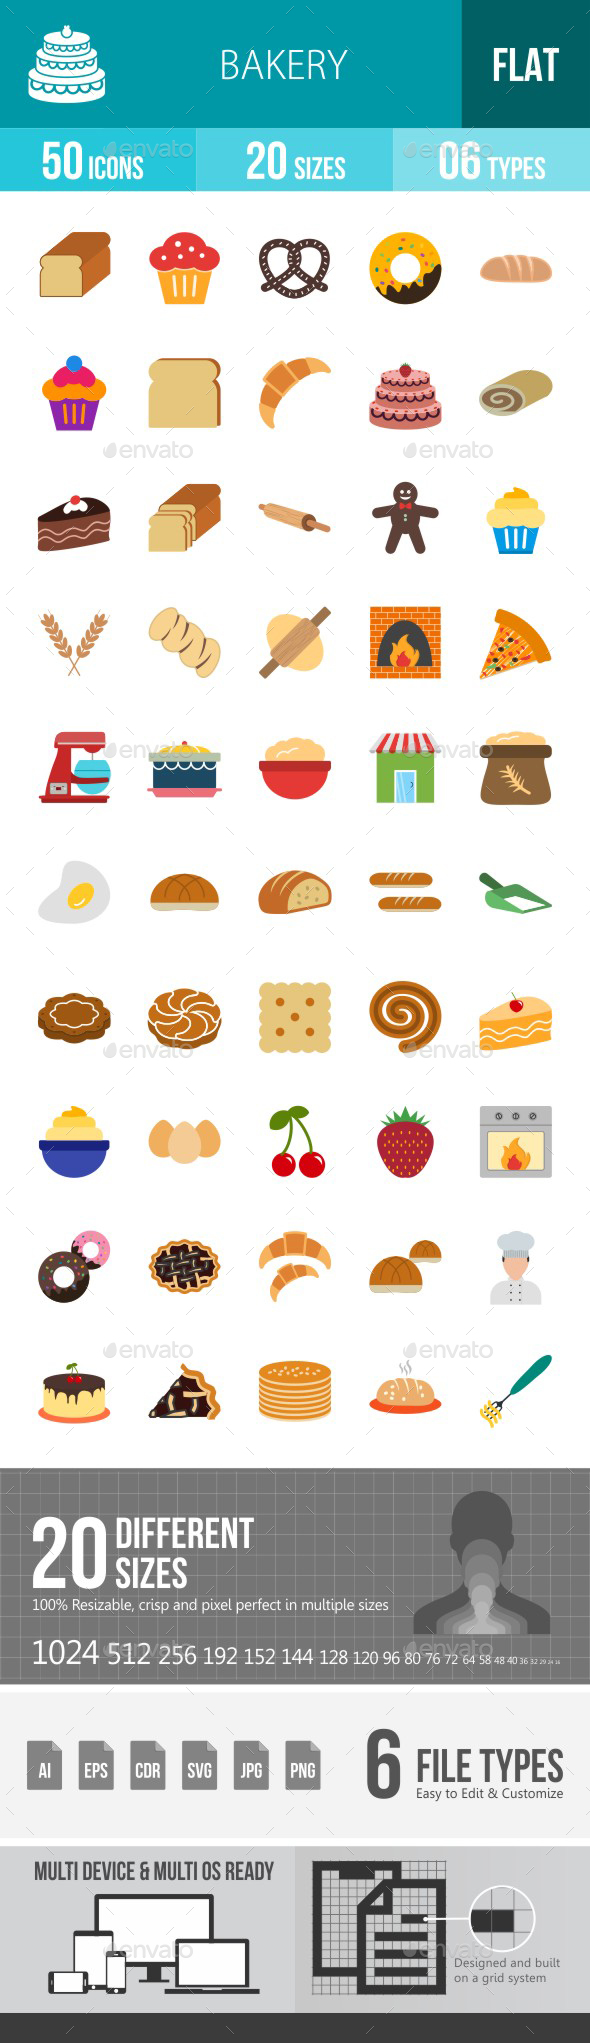 Bakery Flat Multicolor Icons - Icons